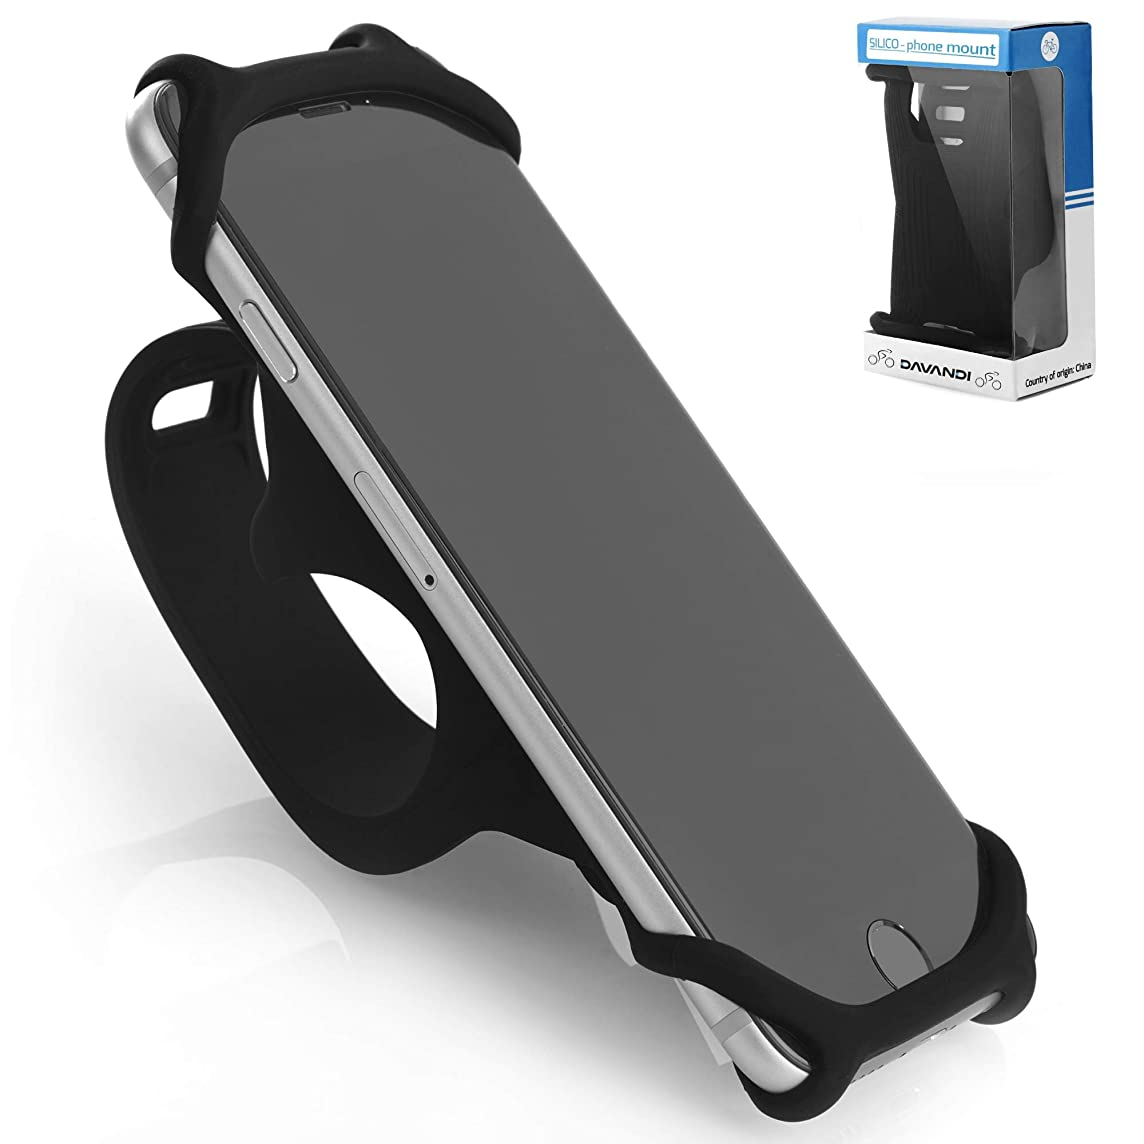 Premium Bike Phone Mount Made of Durable Non-Slip Silicone. Mobile Cellphone Holder/Universal Cradle for All Bicycle Handlebars and 99% of Smartphones: iPhone 8, 7, 6, 5, Samsung Series and More